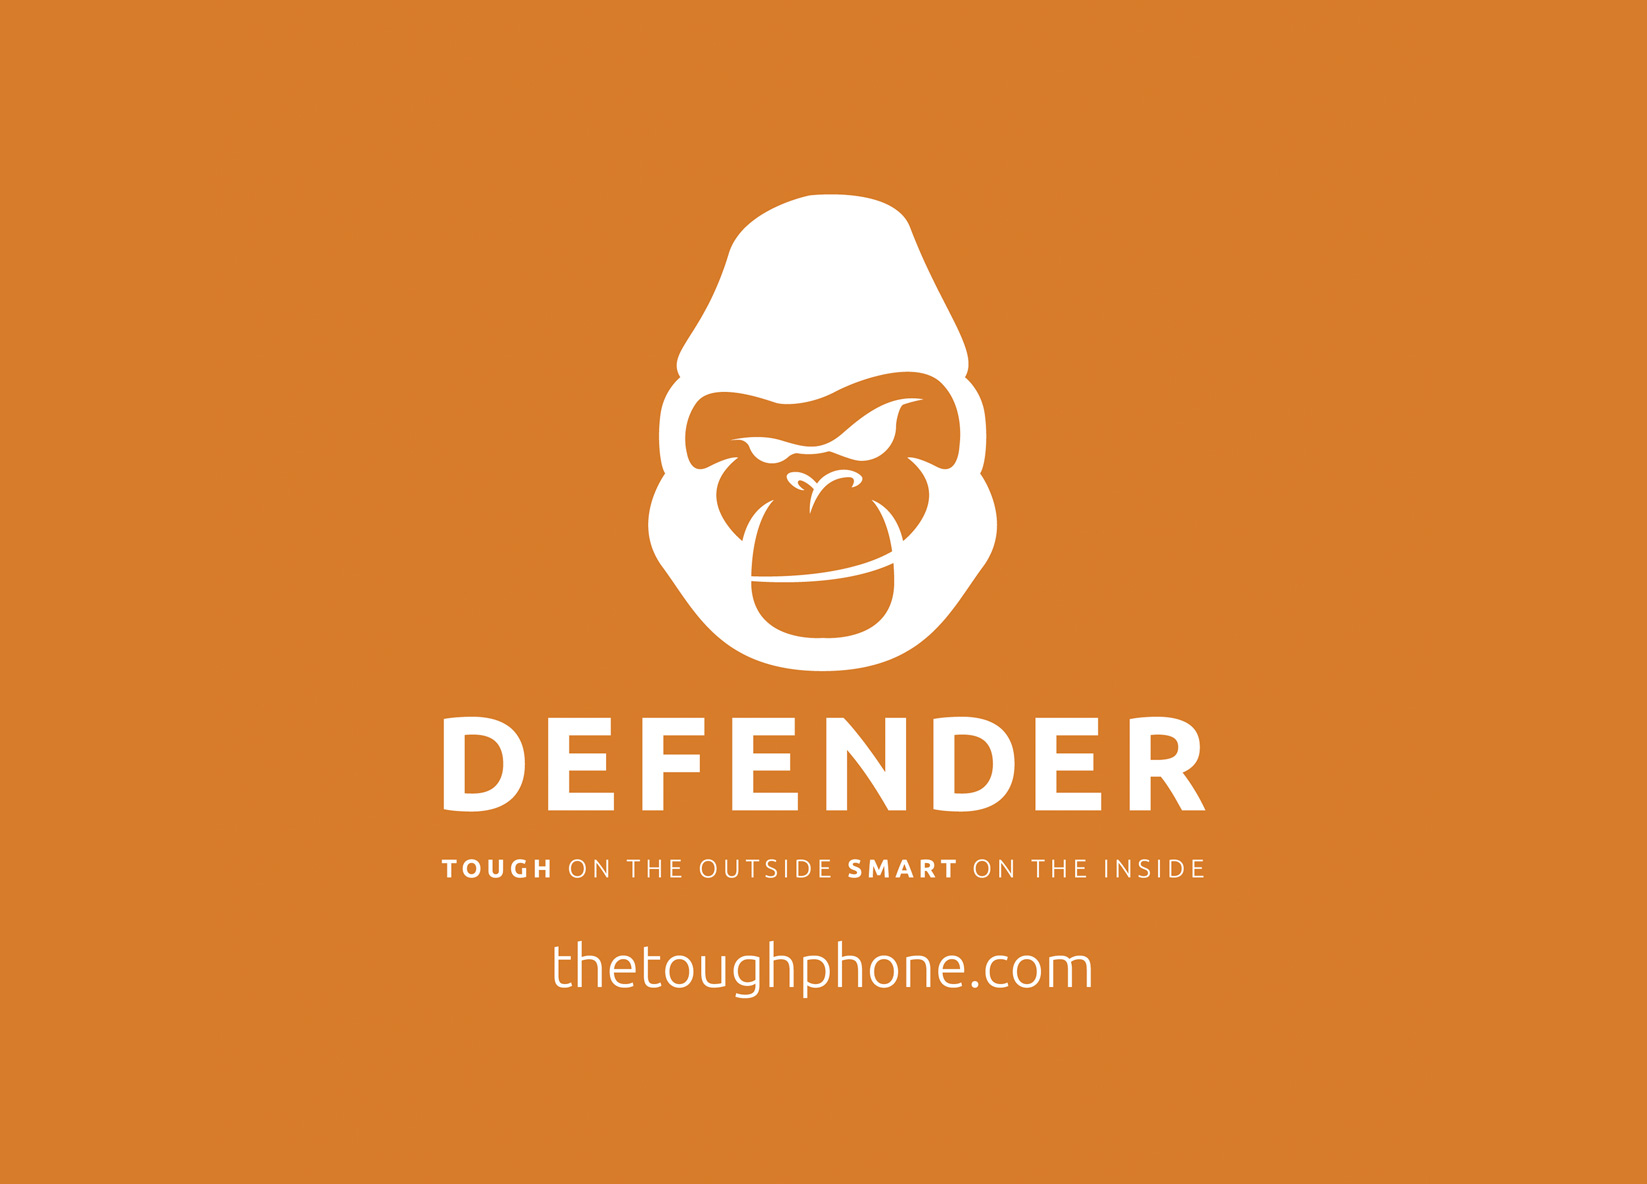 Defender tough on the outside smart on the inside